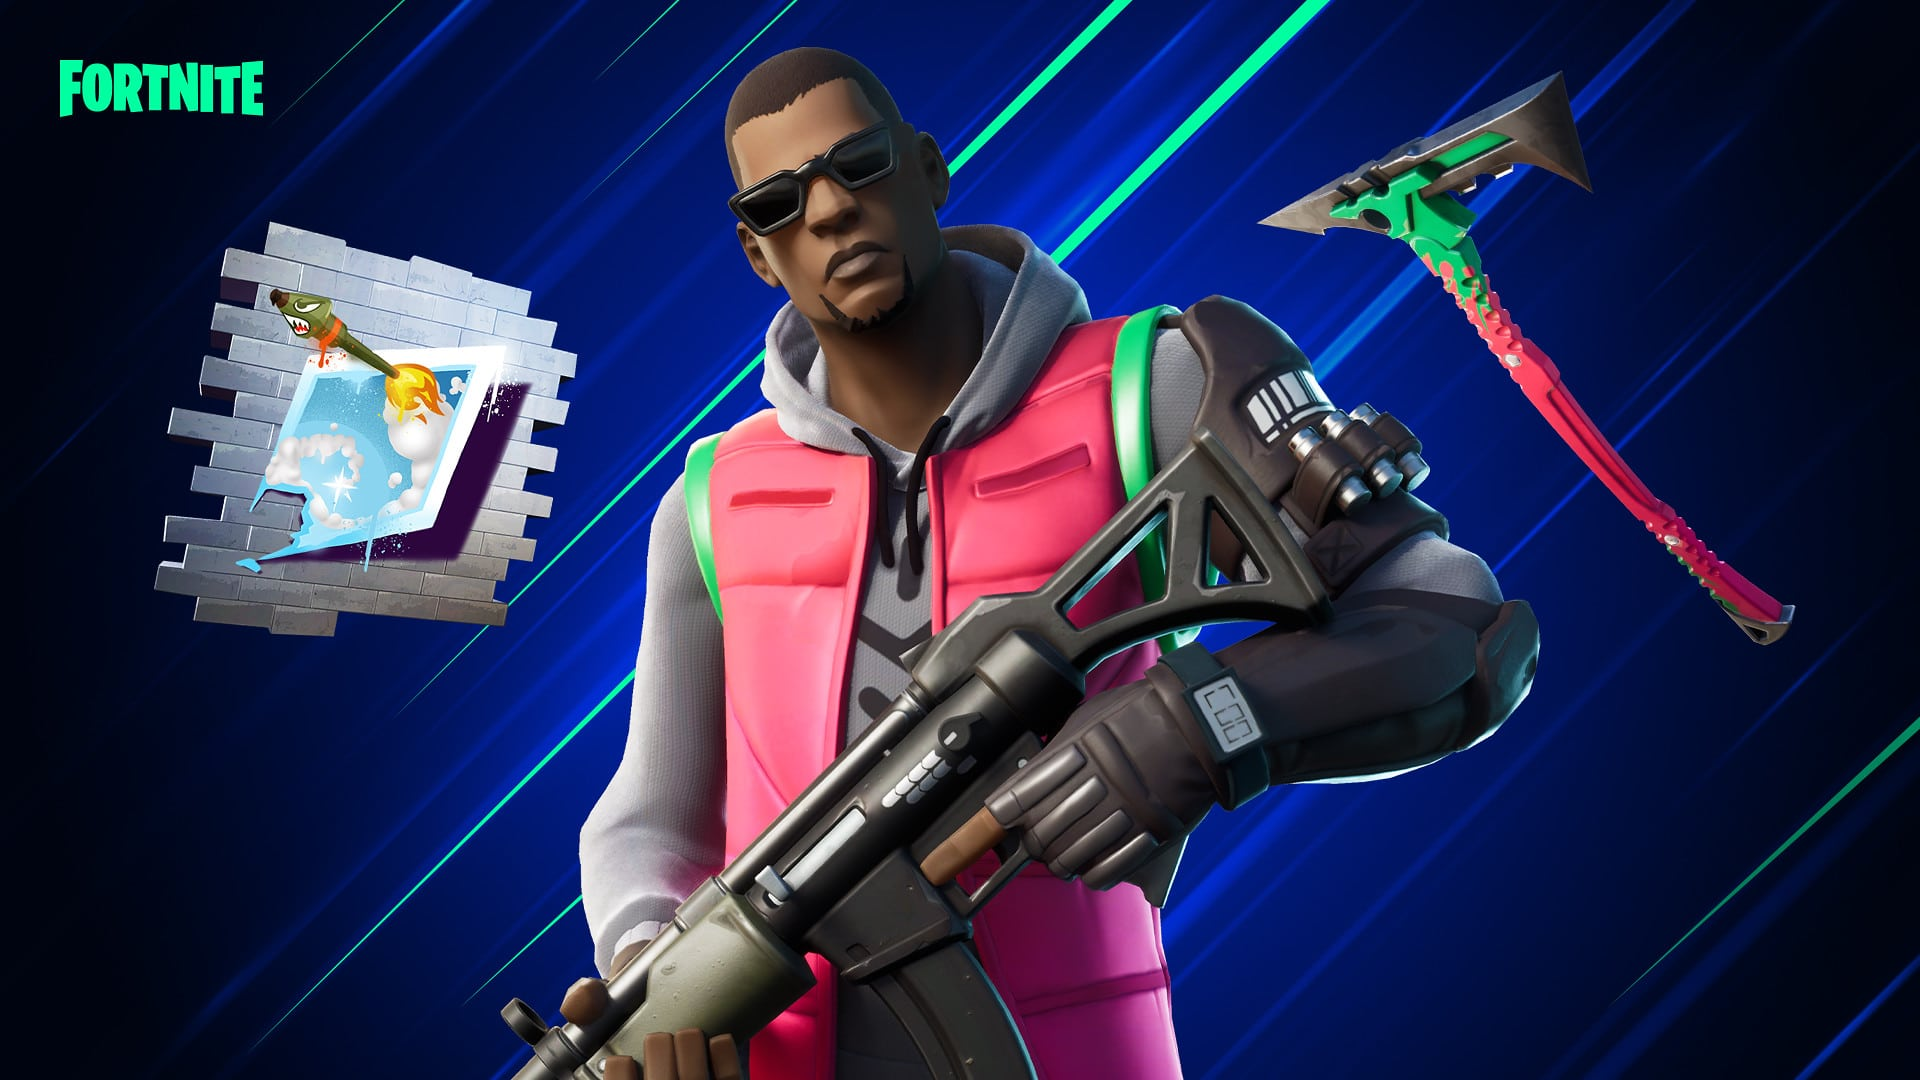 Fortnite PS4 Celebration Cup - Free Tango Ski, Pickaxe and Spray